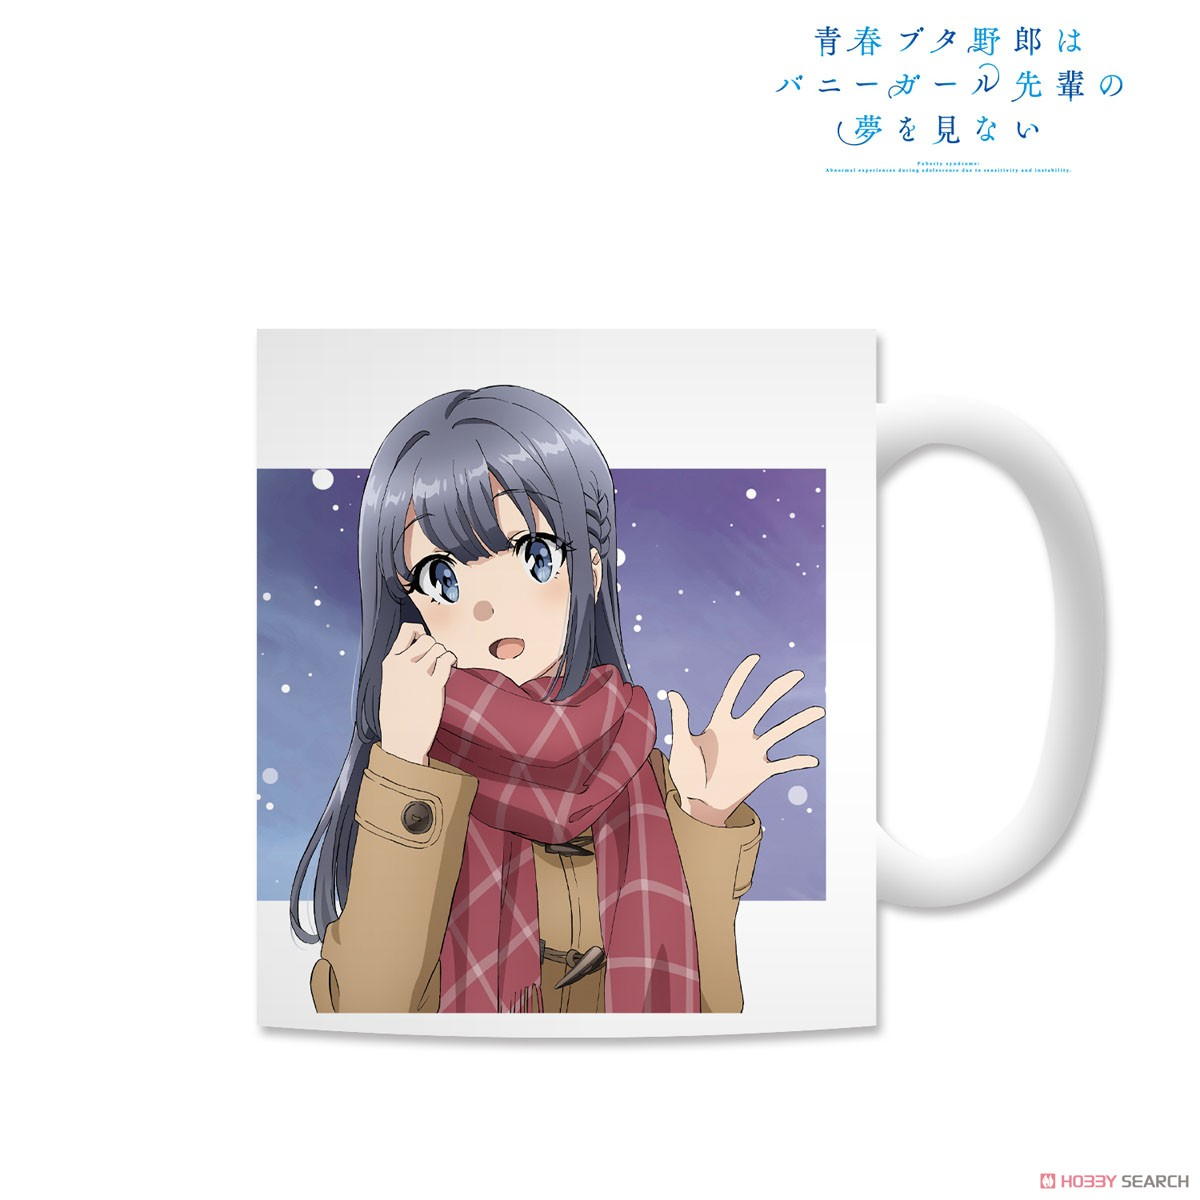 Rascal Does Not Dream of Bunny Girl Senpai Especially Illustrated Shoko Makinohara Winter Outfit Ver. Mug Cup (Anime Toy) Item picture1